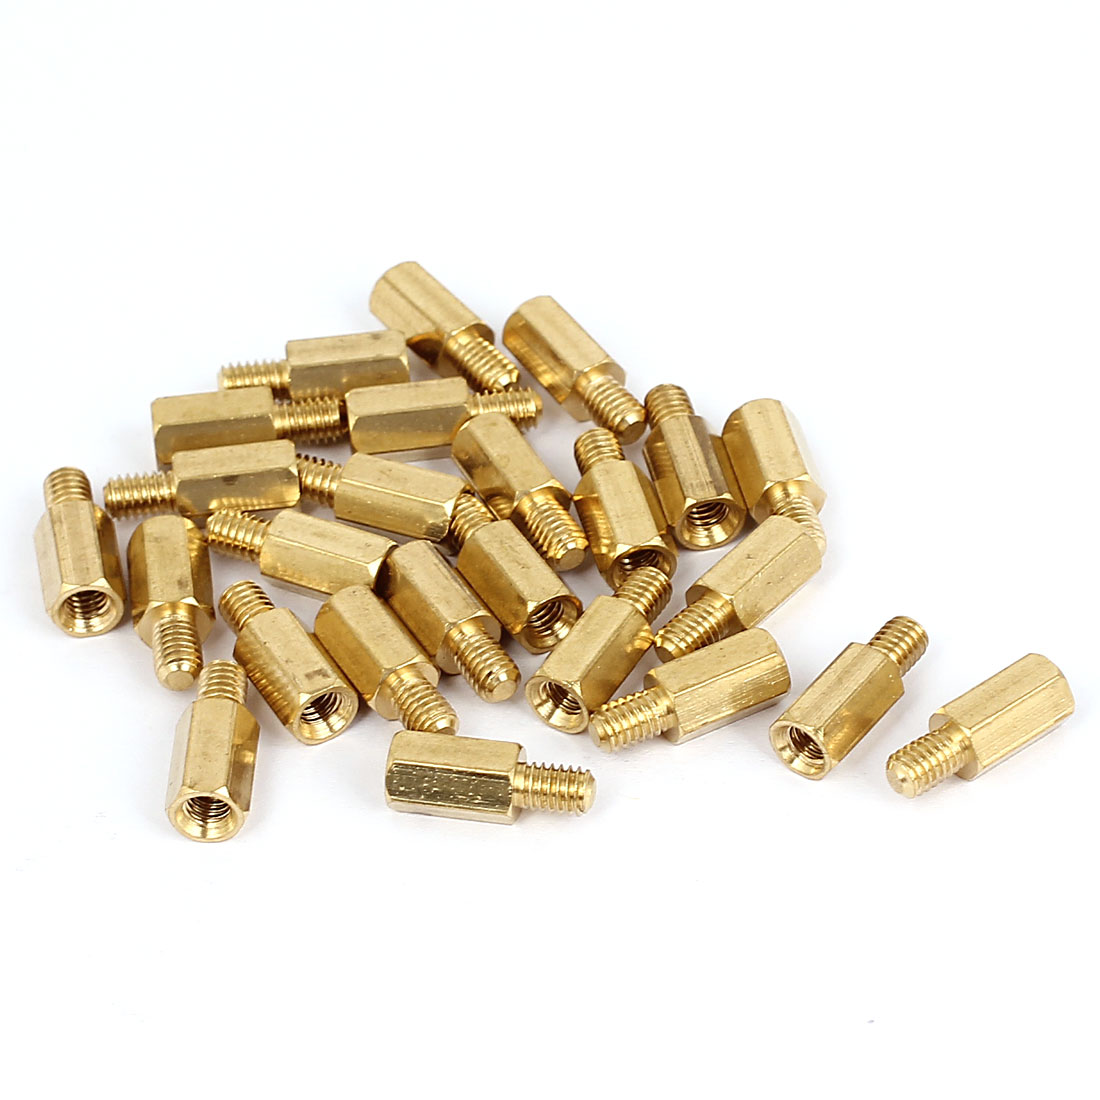 M4x10+6mm Female/Male Thread Brass Hex Standoff Pillar Spacer Coupler Nut 25pcs